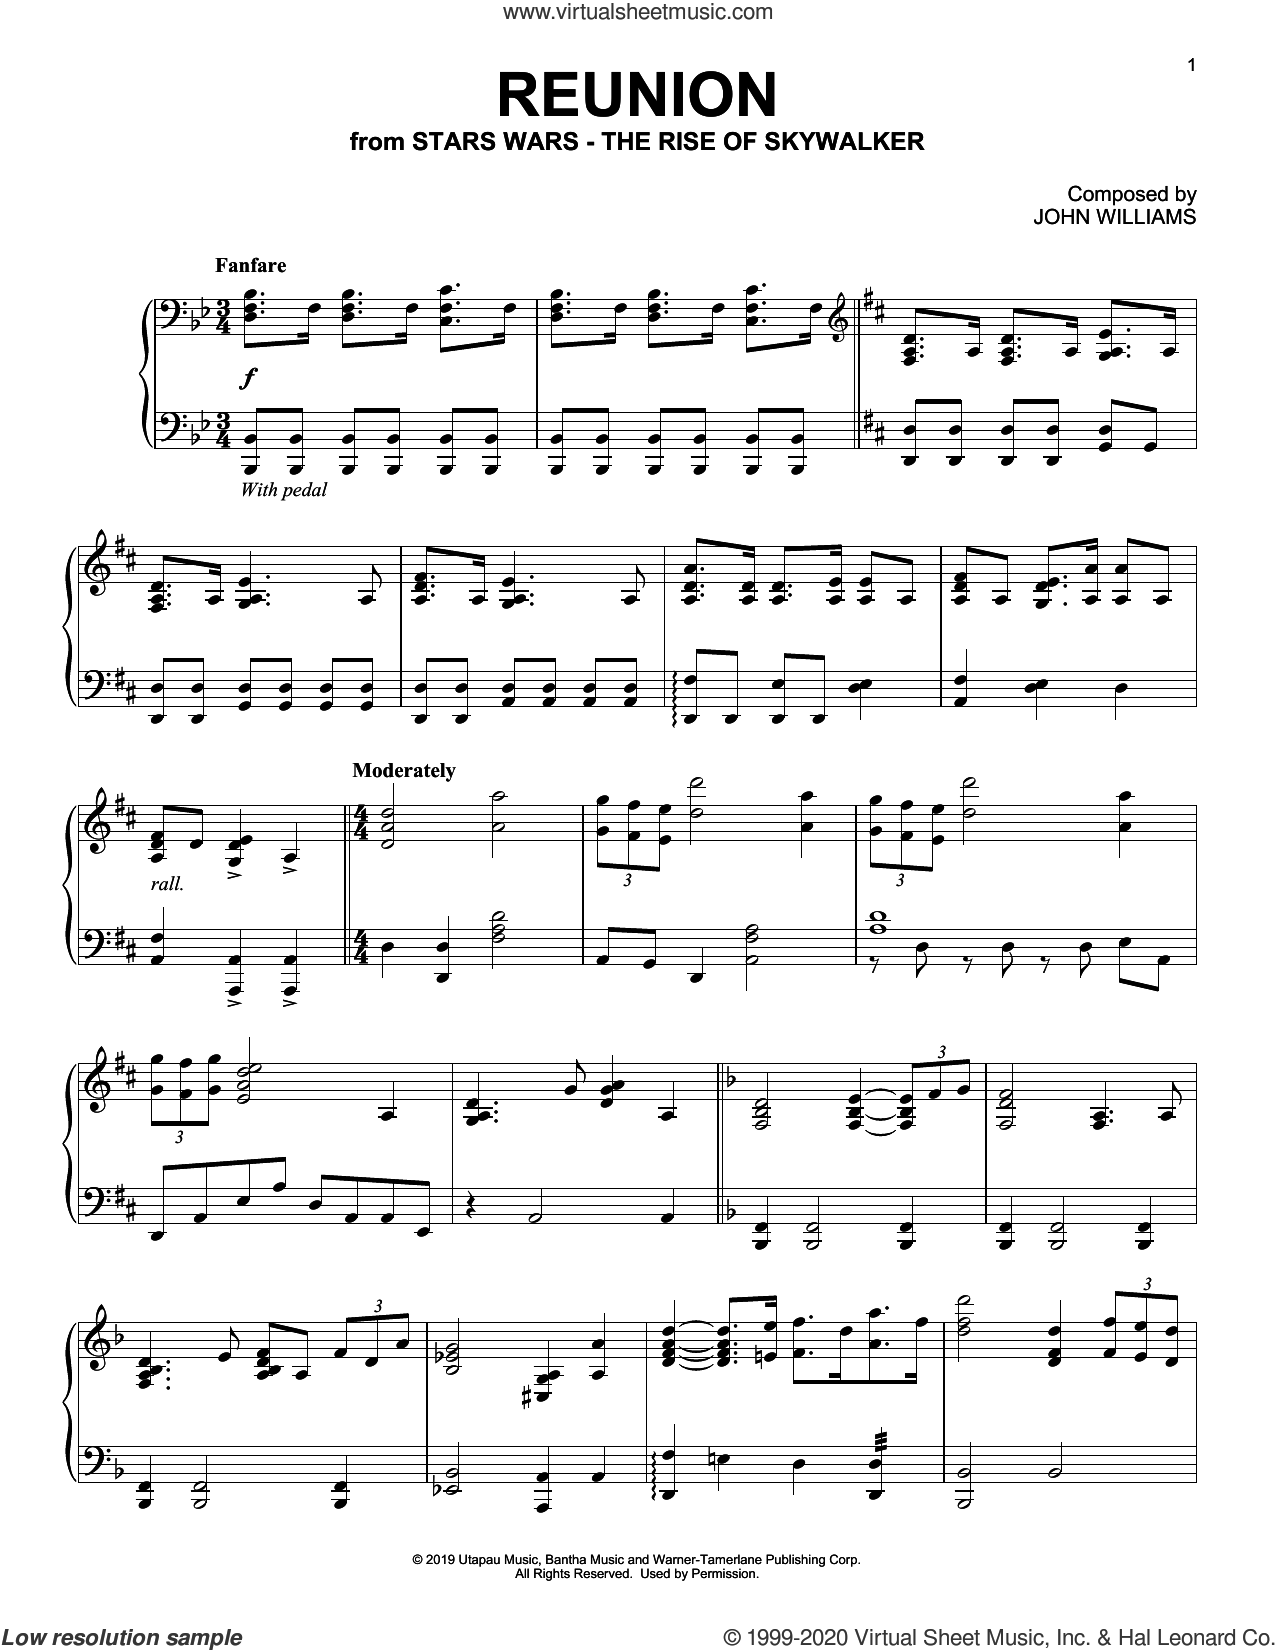 Reunion (from The Rise Of Skywalker) sheet music for piano solo by John Williams, intermediate skill level